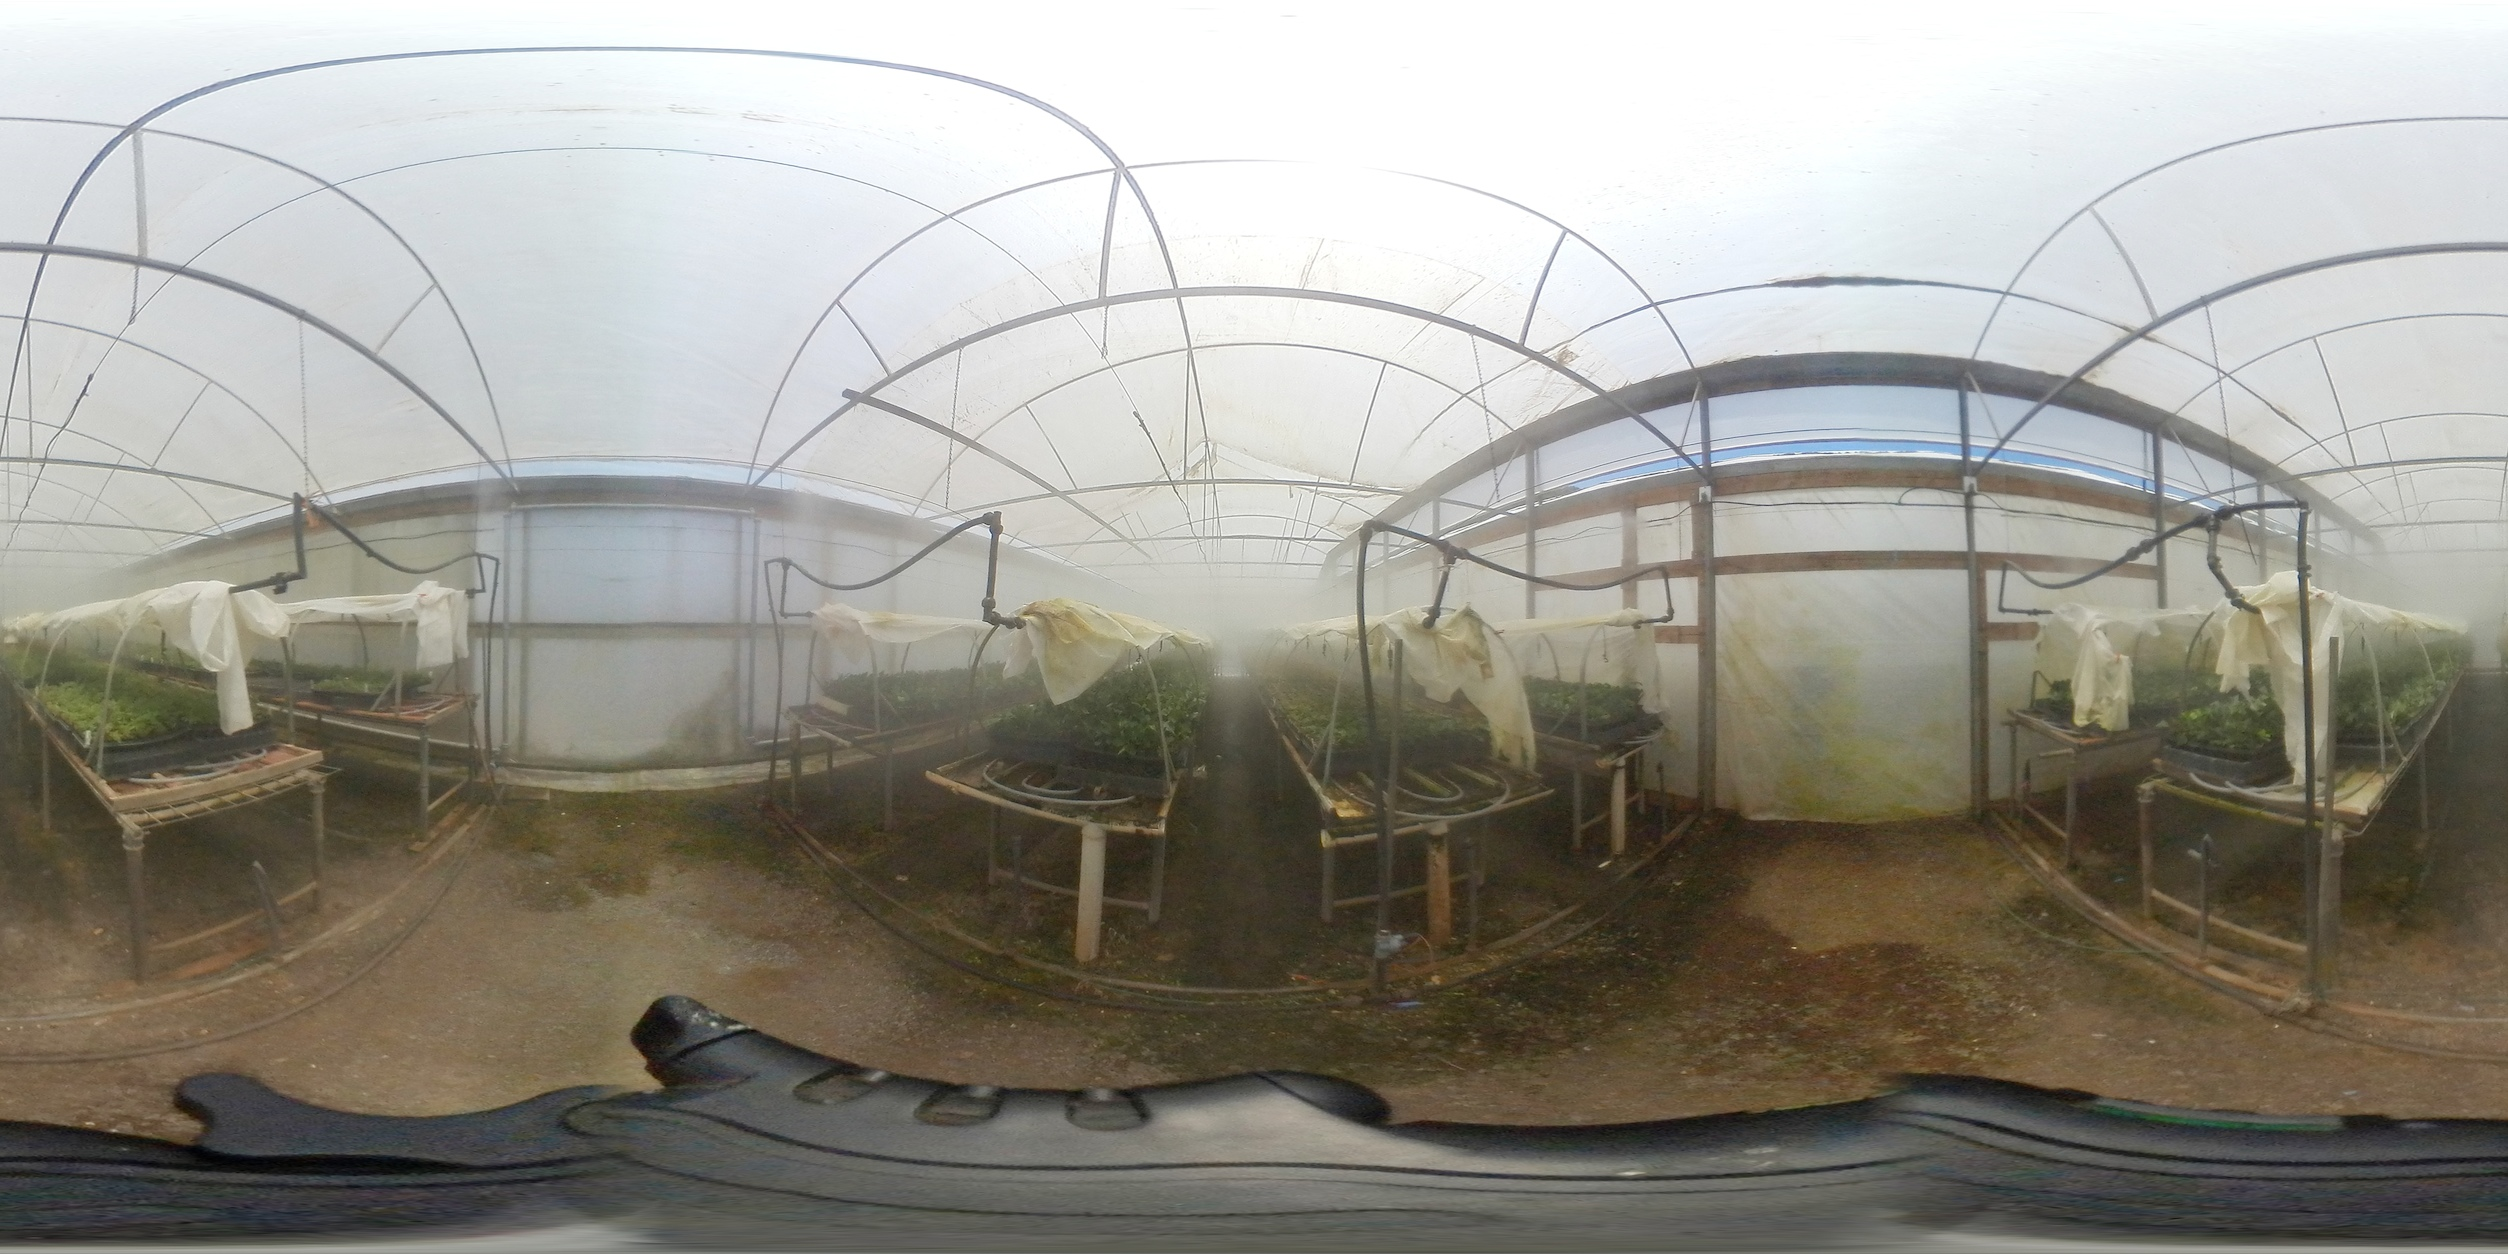 A misty greenhouse with seedlings